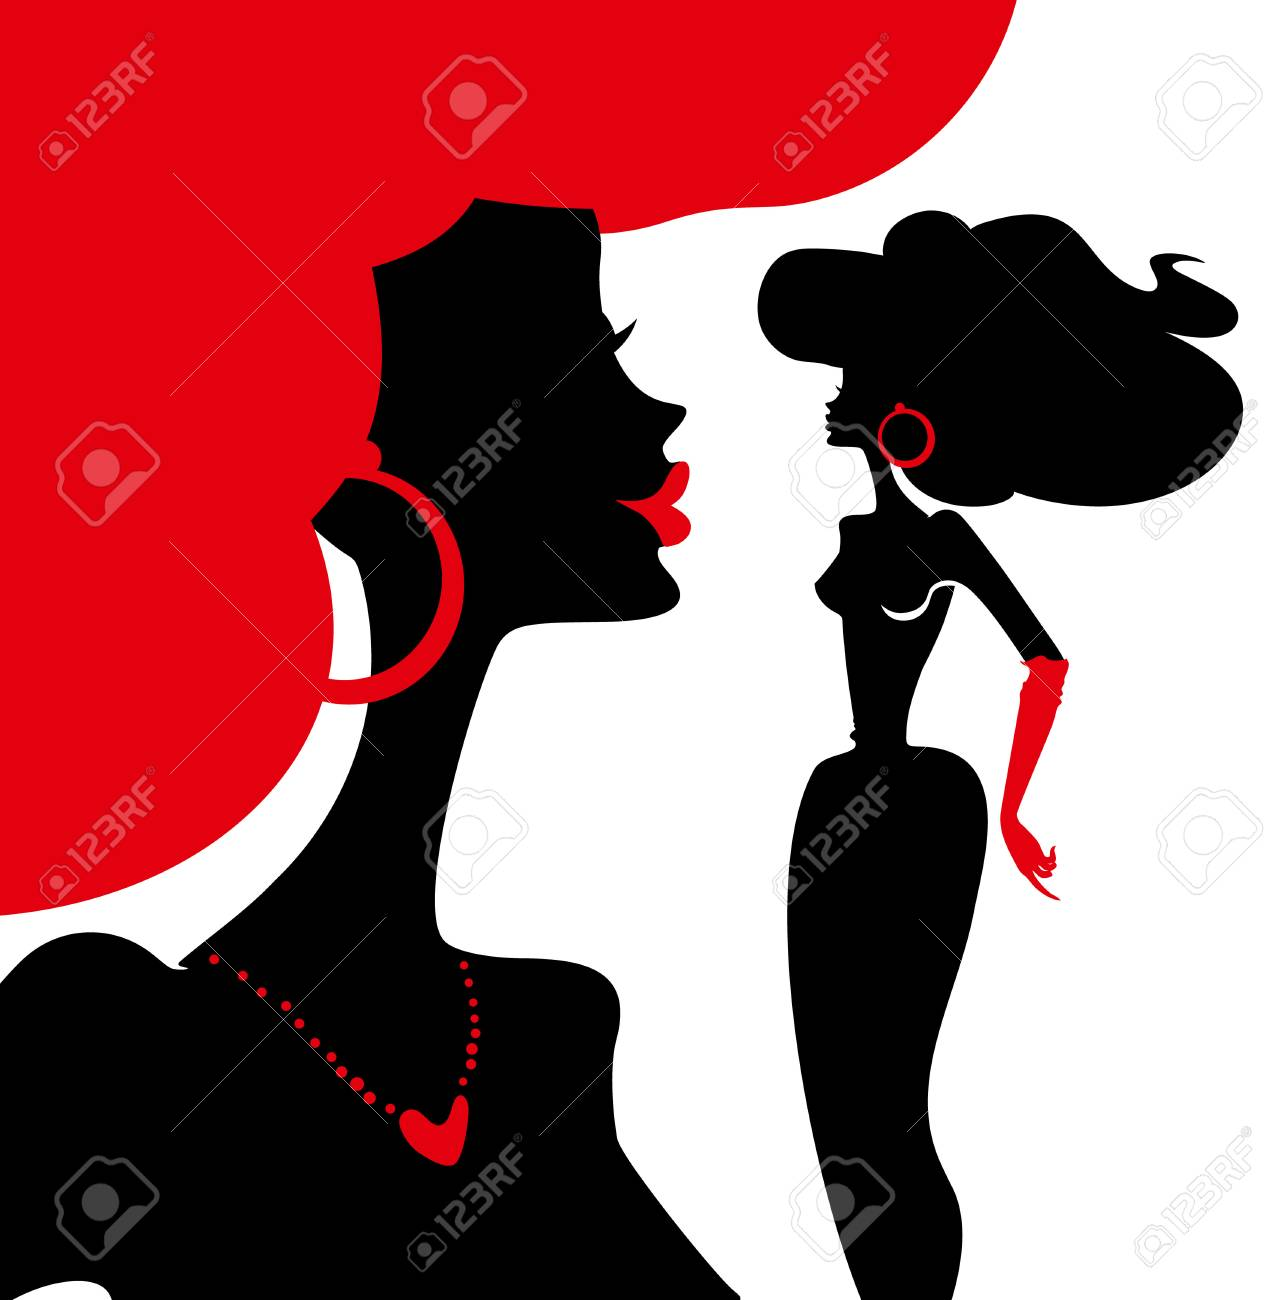 Women Silhouettes Vector Illustration Royalty Free Cliparts